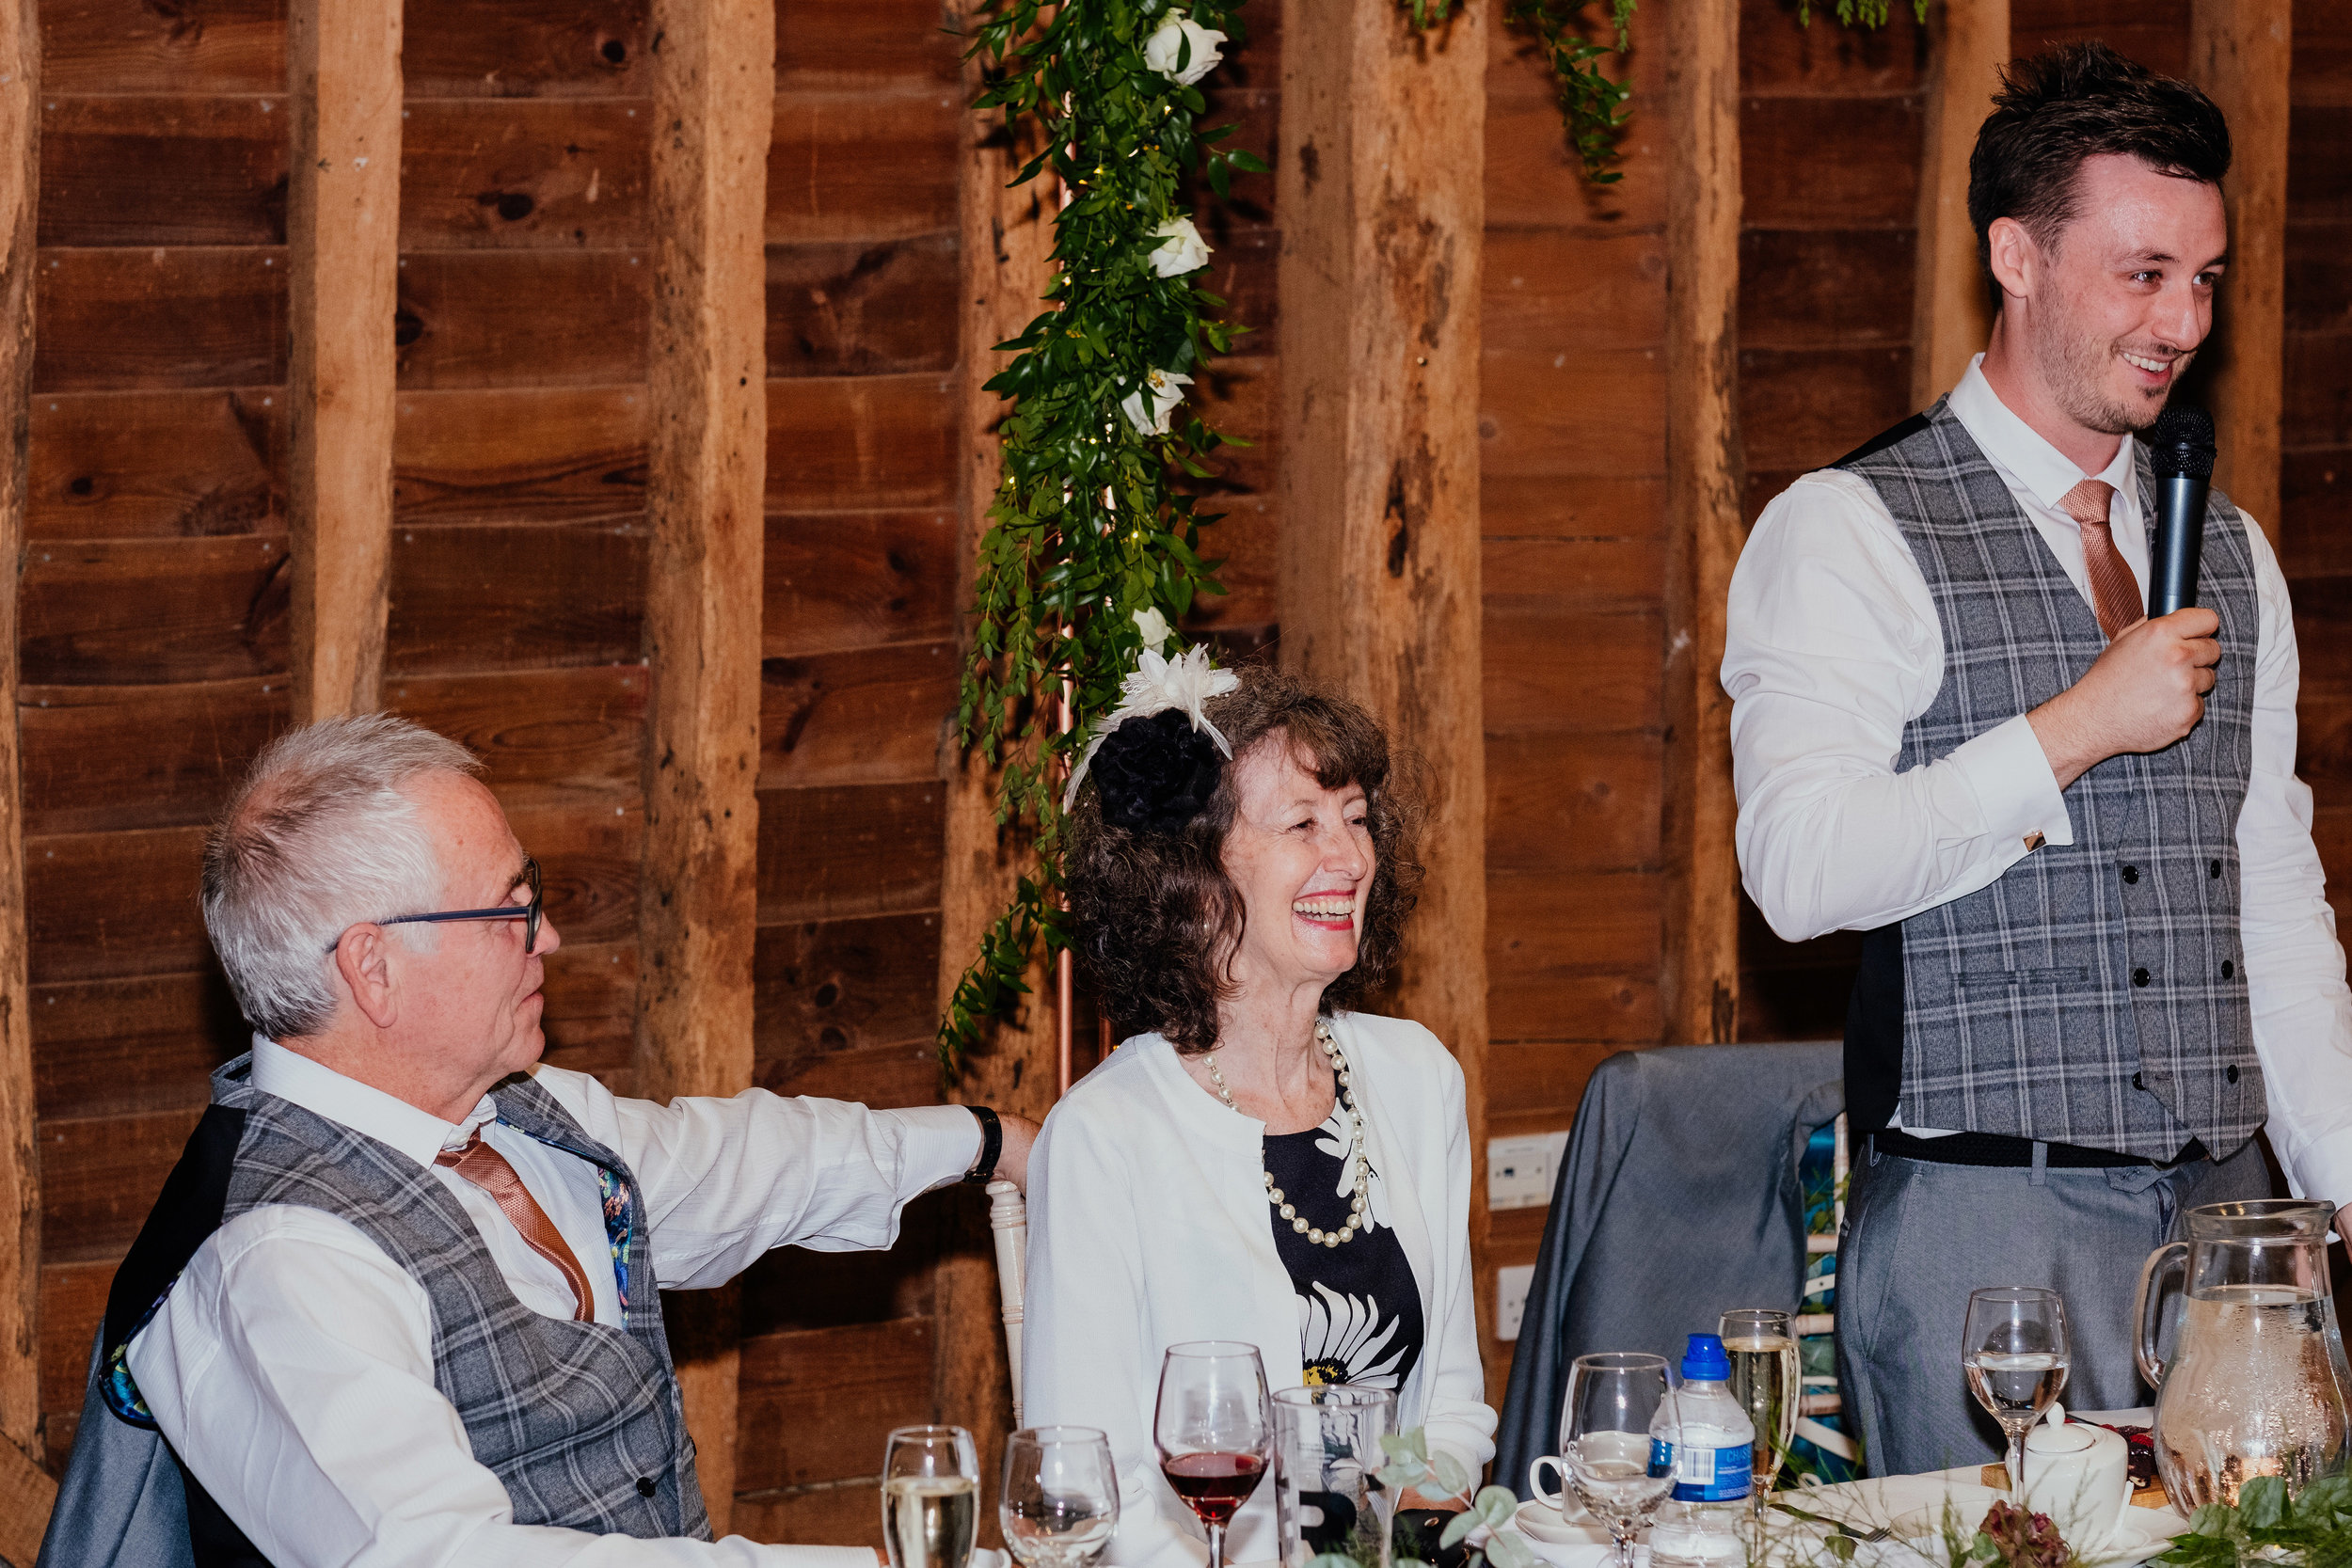 Groom's family laughs as he gives wedding speech